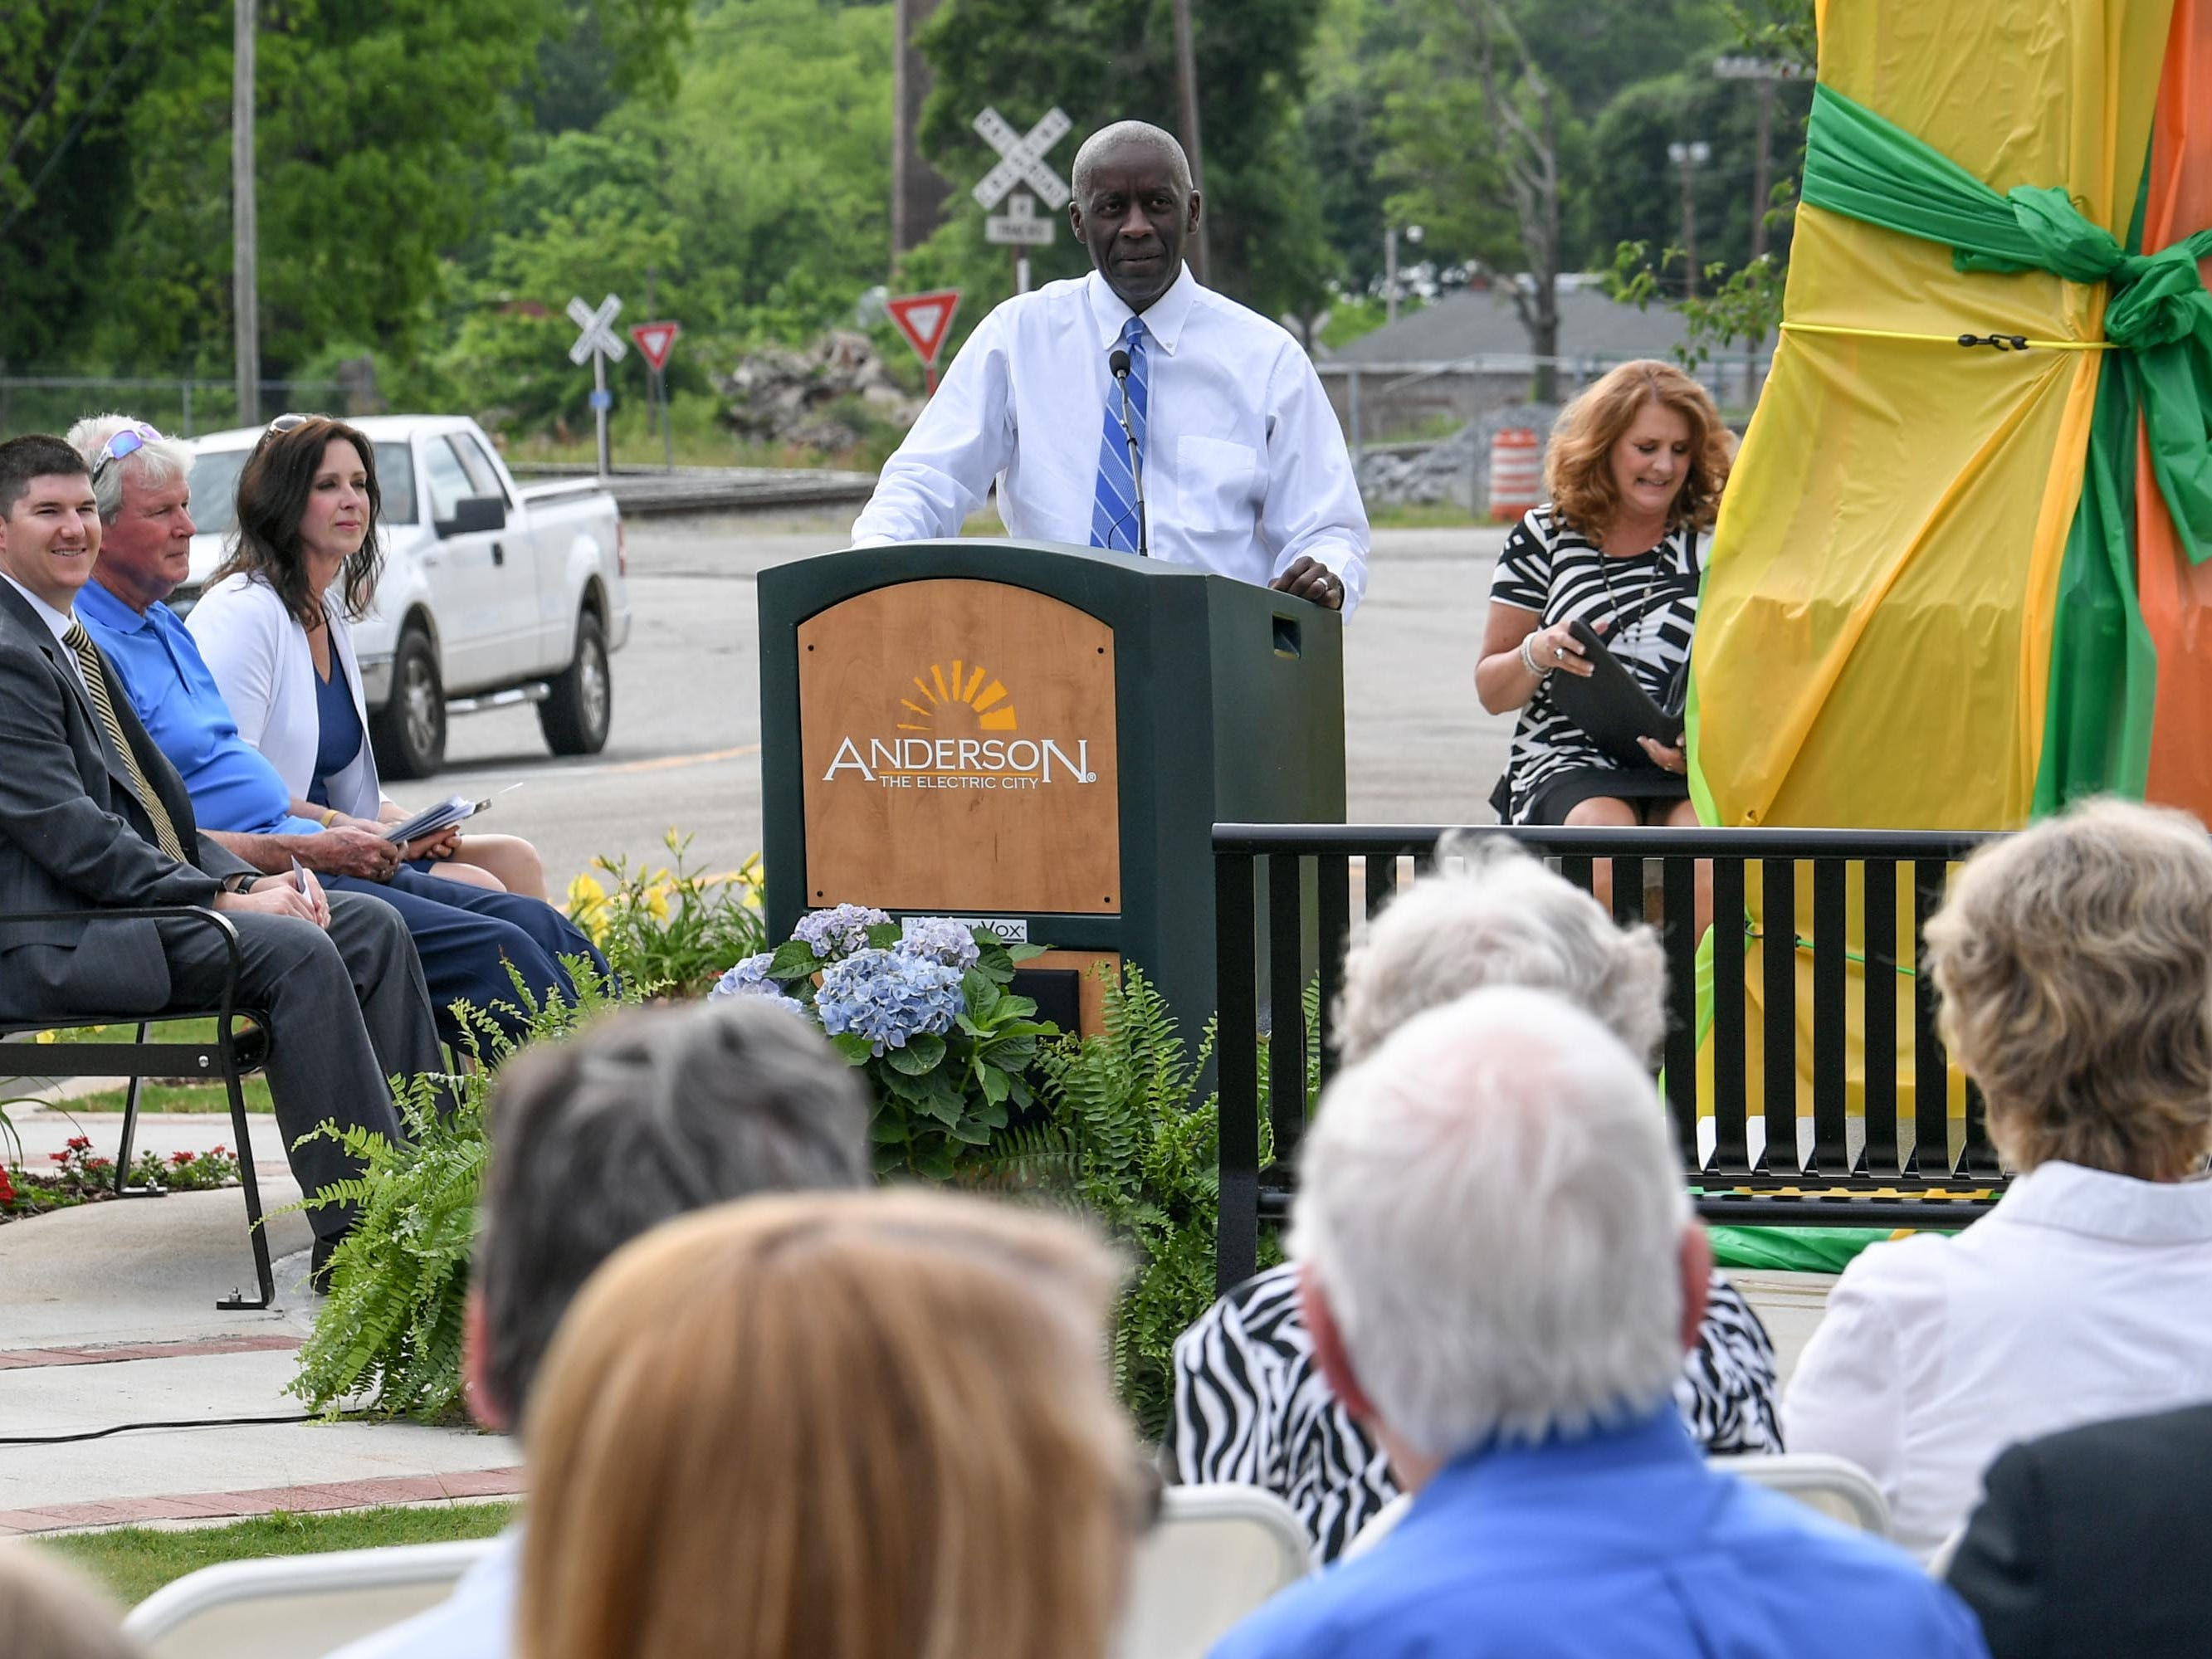 Mayor Terence Roberts speaks before unveiling the Under the bridge project called Textile Point in downtown Anderson Thursday, May 9, 2019. Scott Foster of Anderson designed the monument honoring years of textile mills in Anderson, with support partners from To Benefit Anderson, South Carolina Heritage Corridor, the Rotary Club of Anderson, and the City of Anderson.